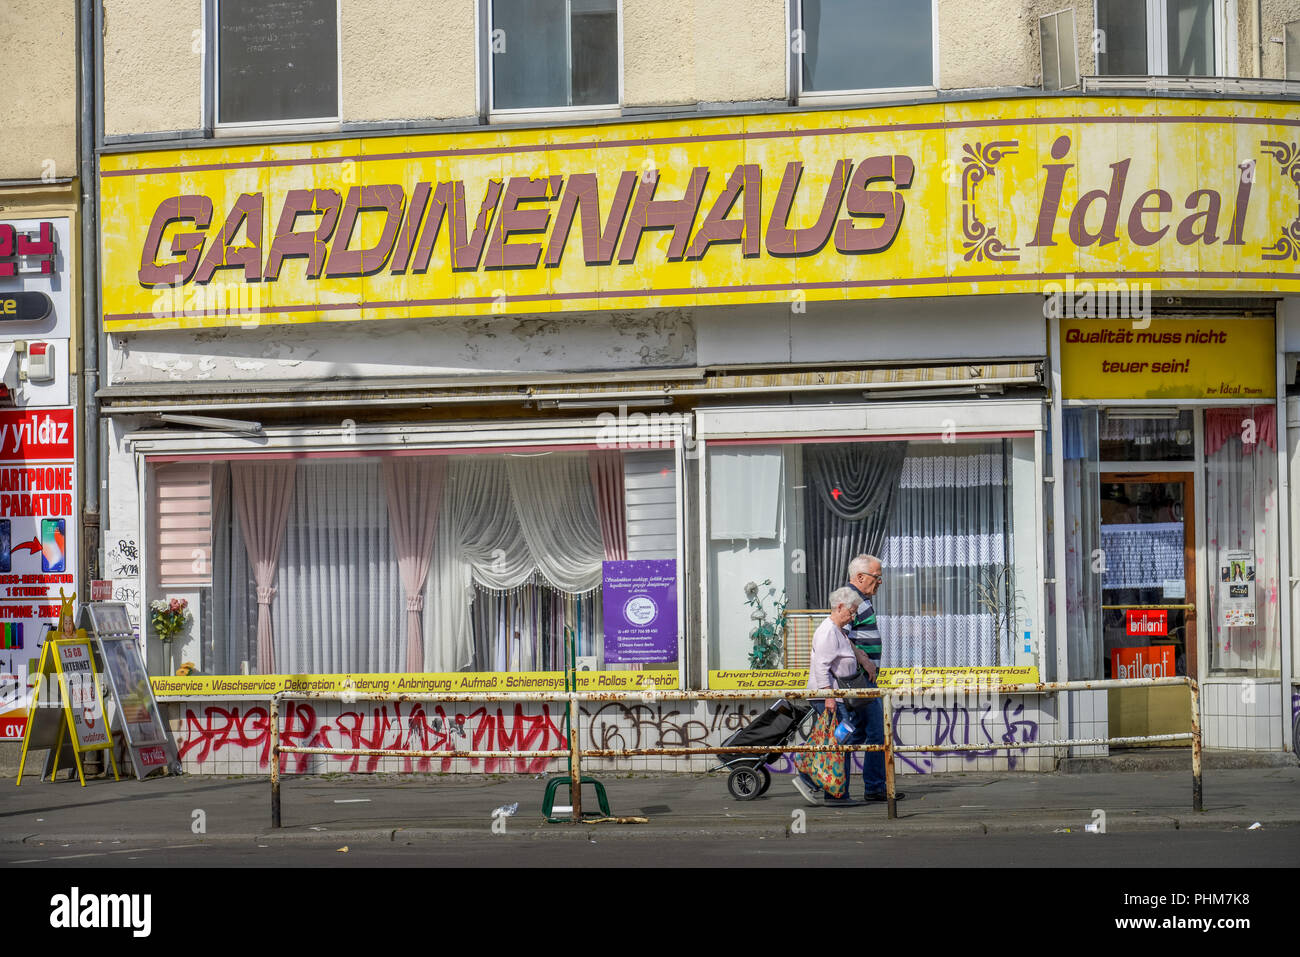 Gardine High Resolution Stock Photography And Images Alamy - Vorhang Laden Berlin